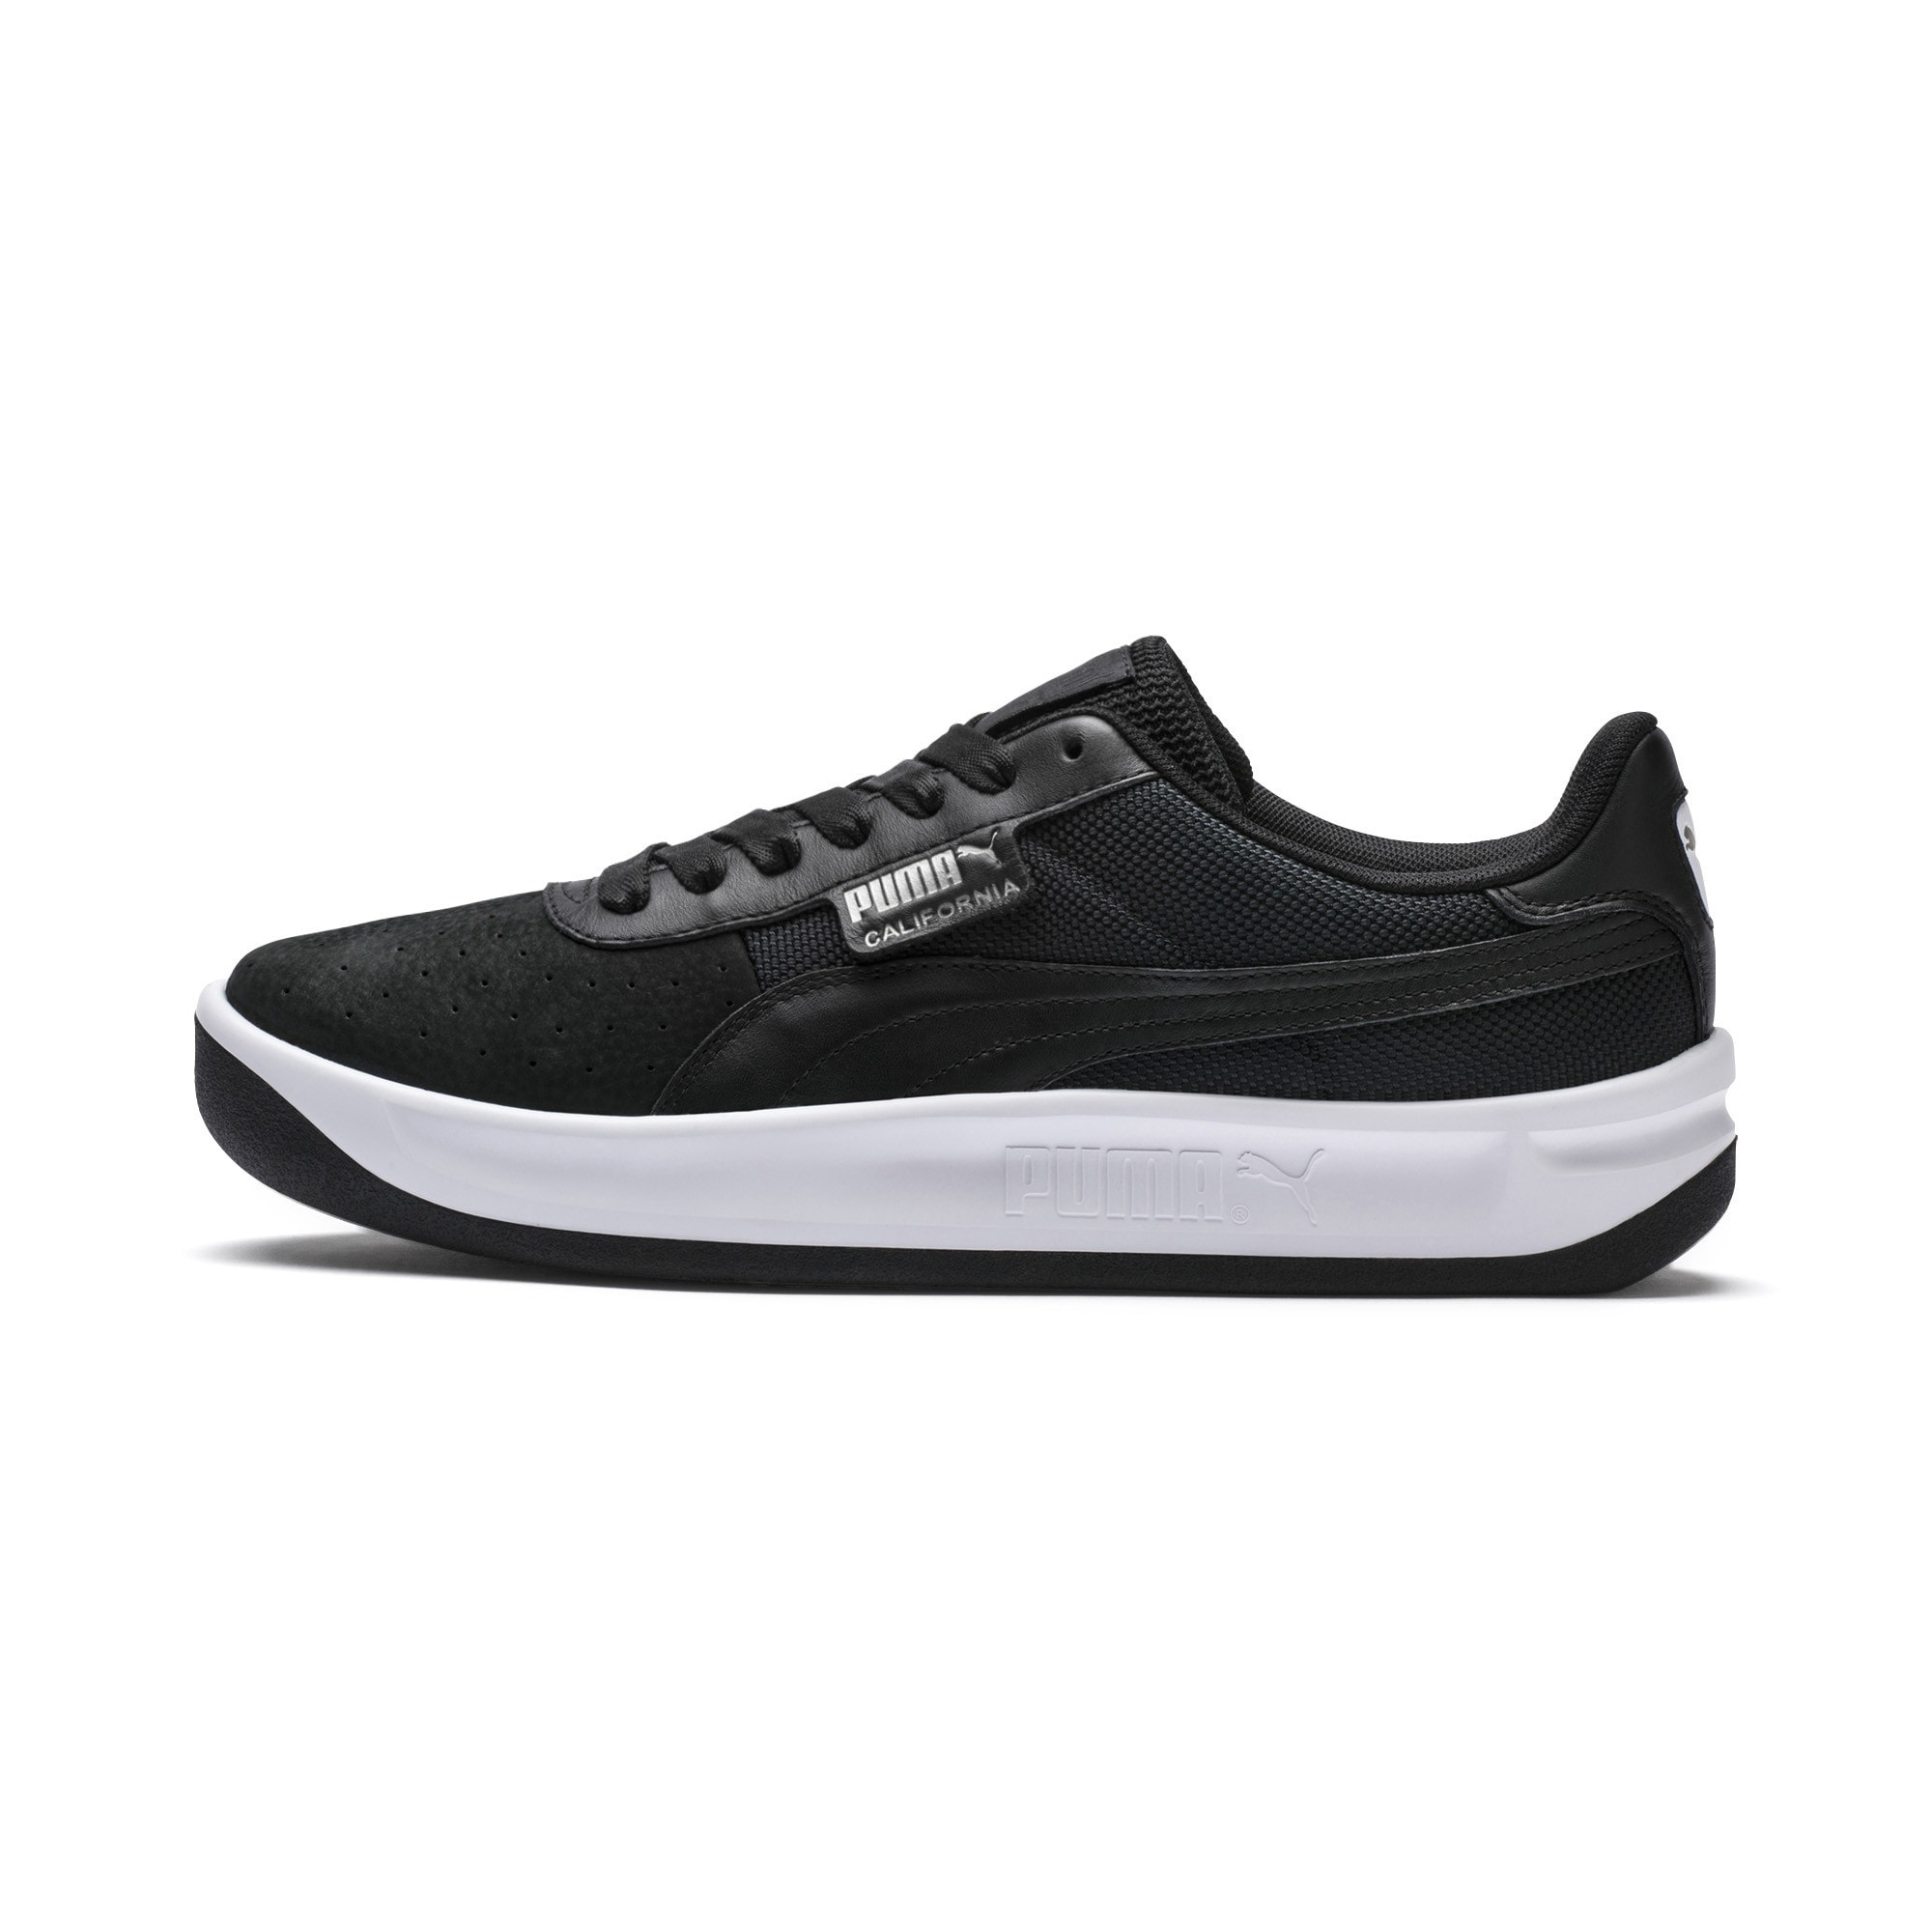 PUMA, Heren Sneakers laag 'California', zwart / wit